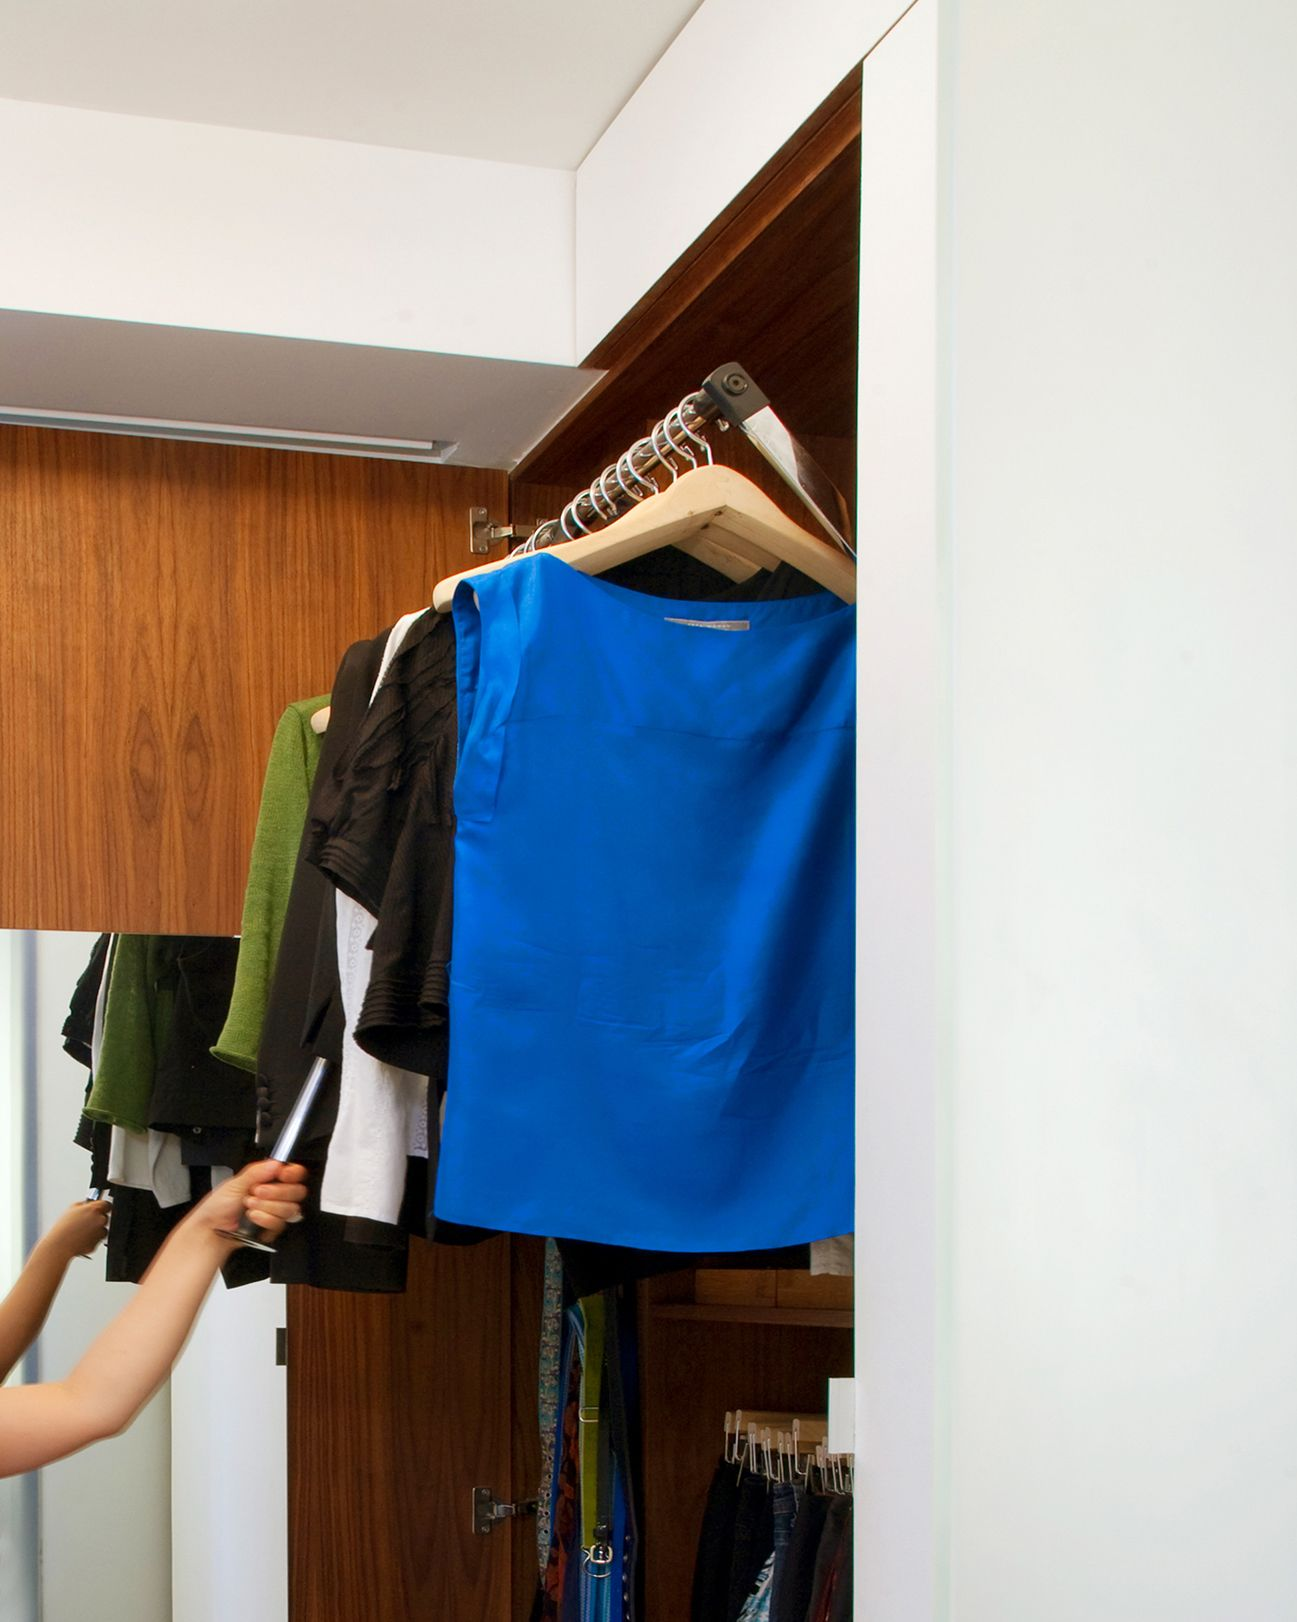 Closet With Pulldown Closetrod To Increase Multifunctionality At The Transformerloft By Studiogarneau A Clever Closet Hardware Loft Modern